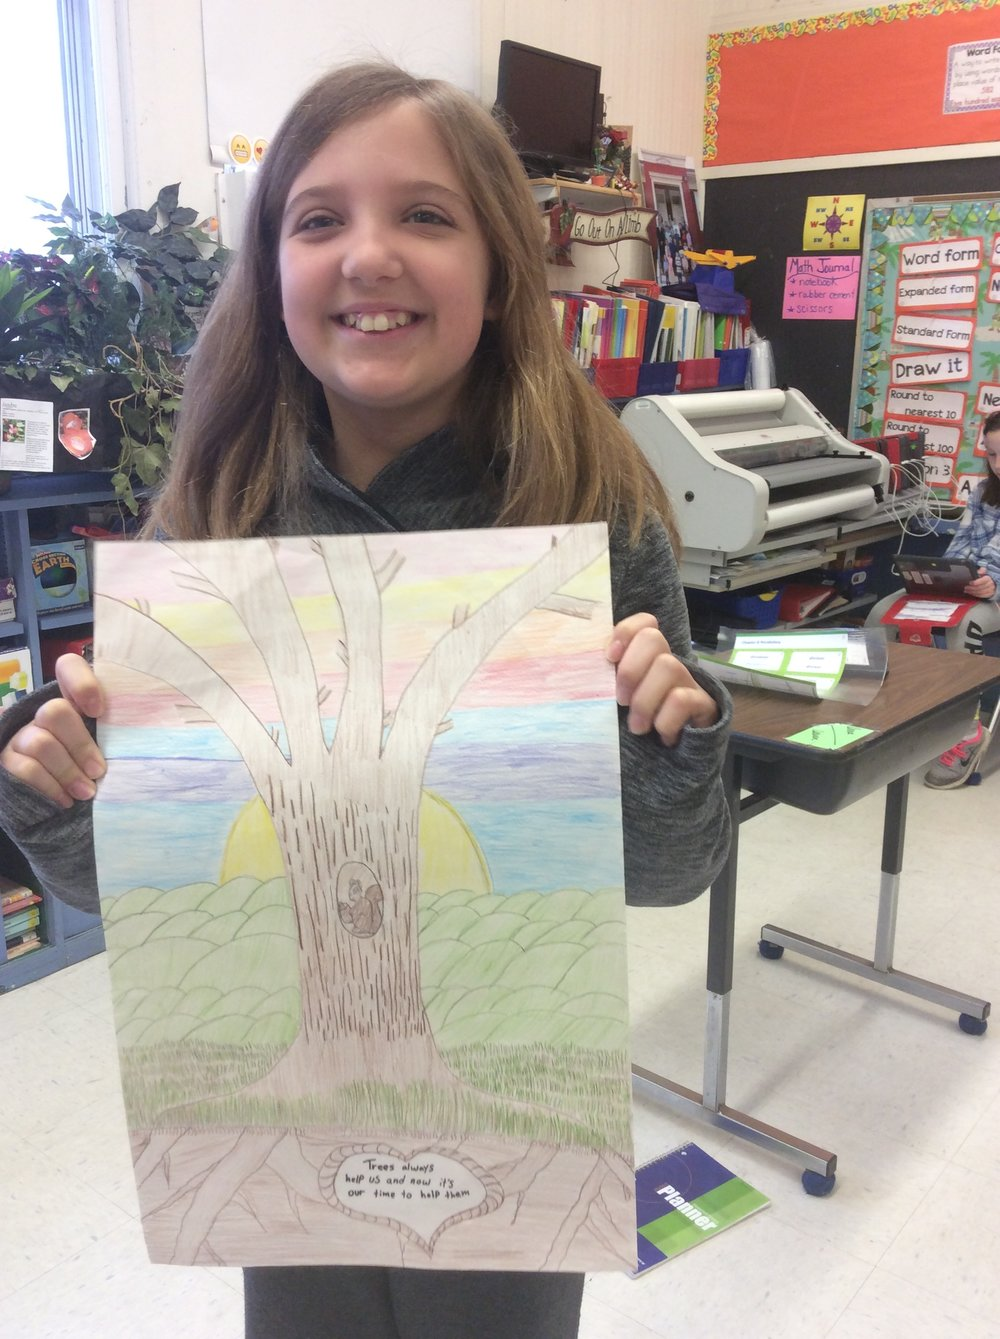 Anna's poster has lots of color and detail !